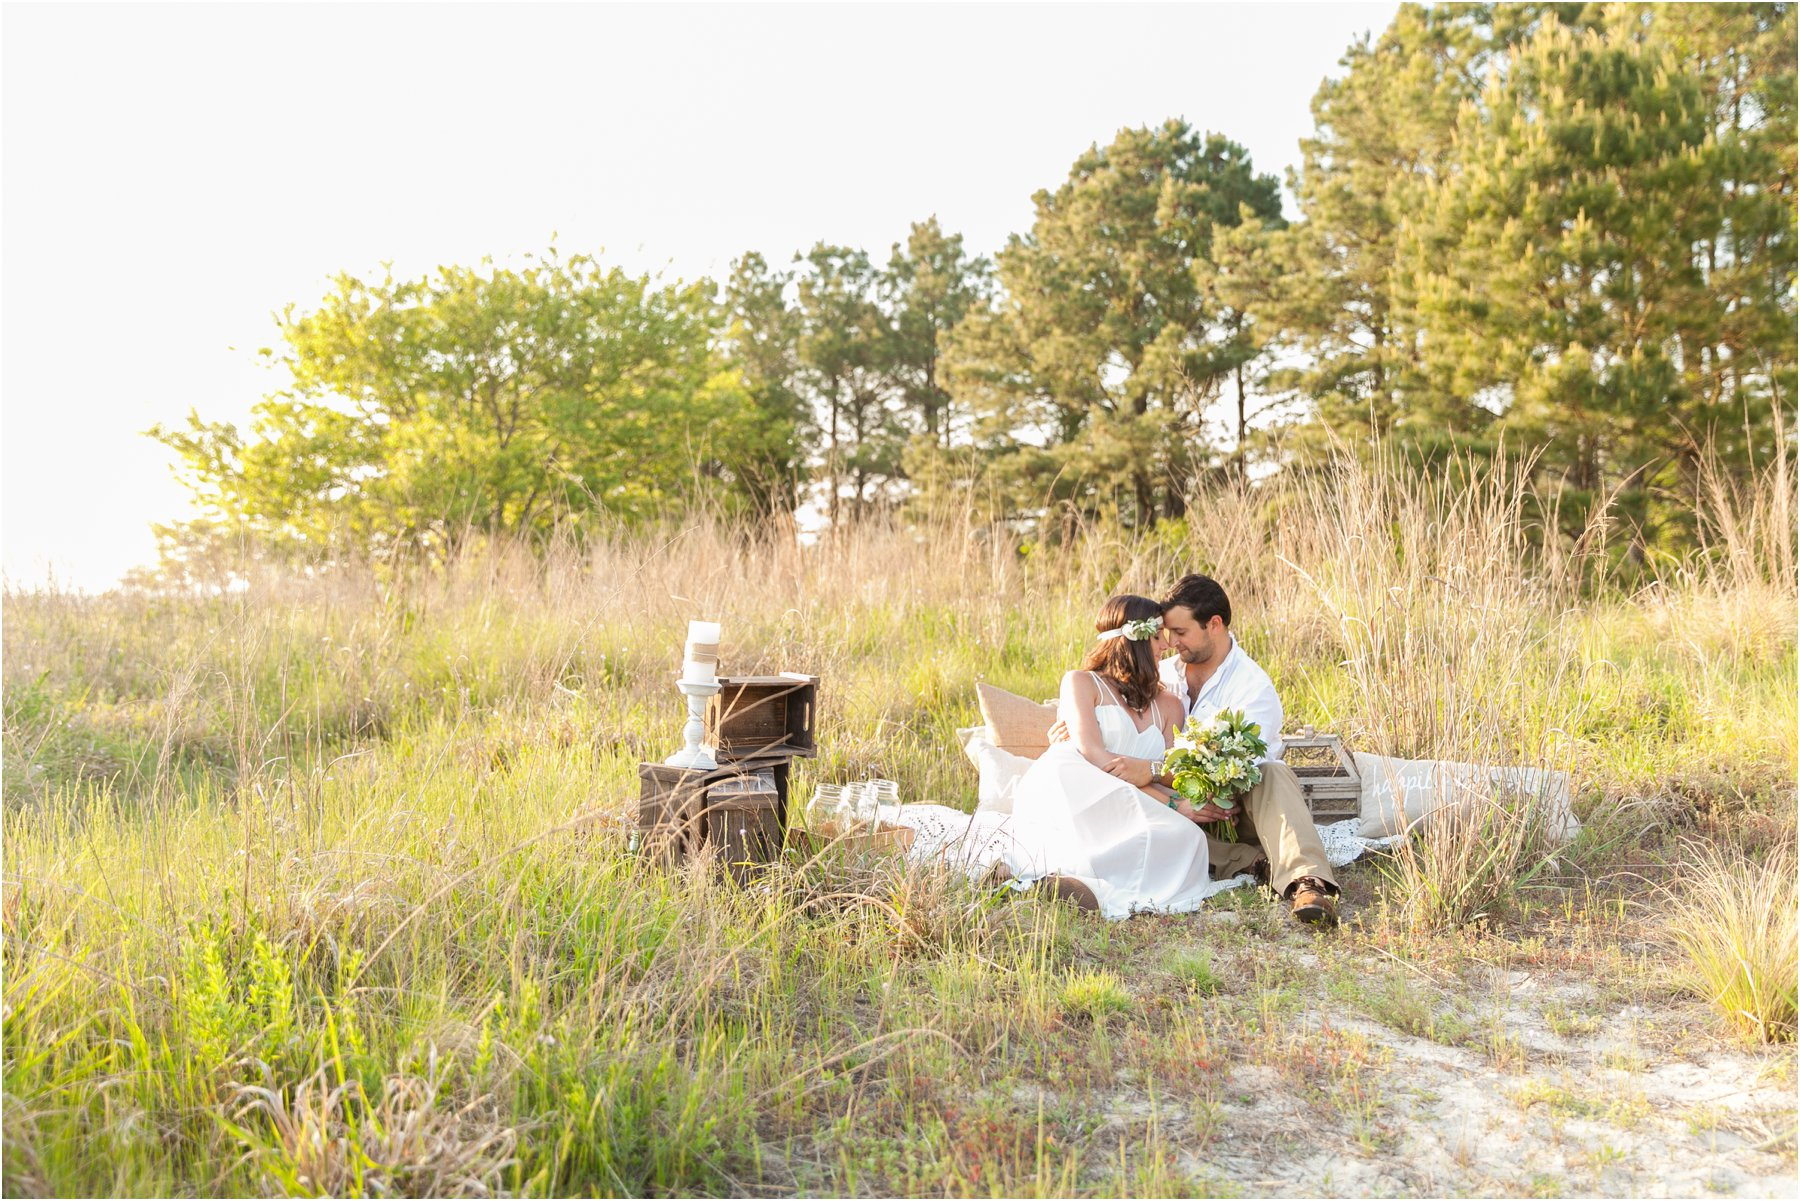 Nofolk_Zoo_engagement_photography_virginia_Jessica_ryan_photography_0179